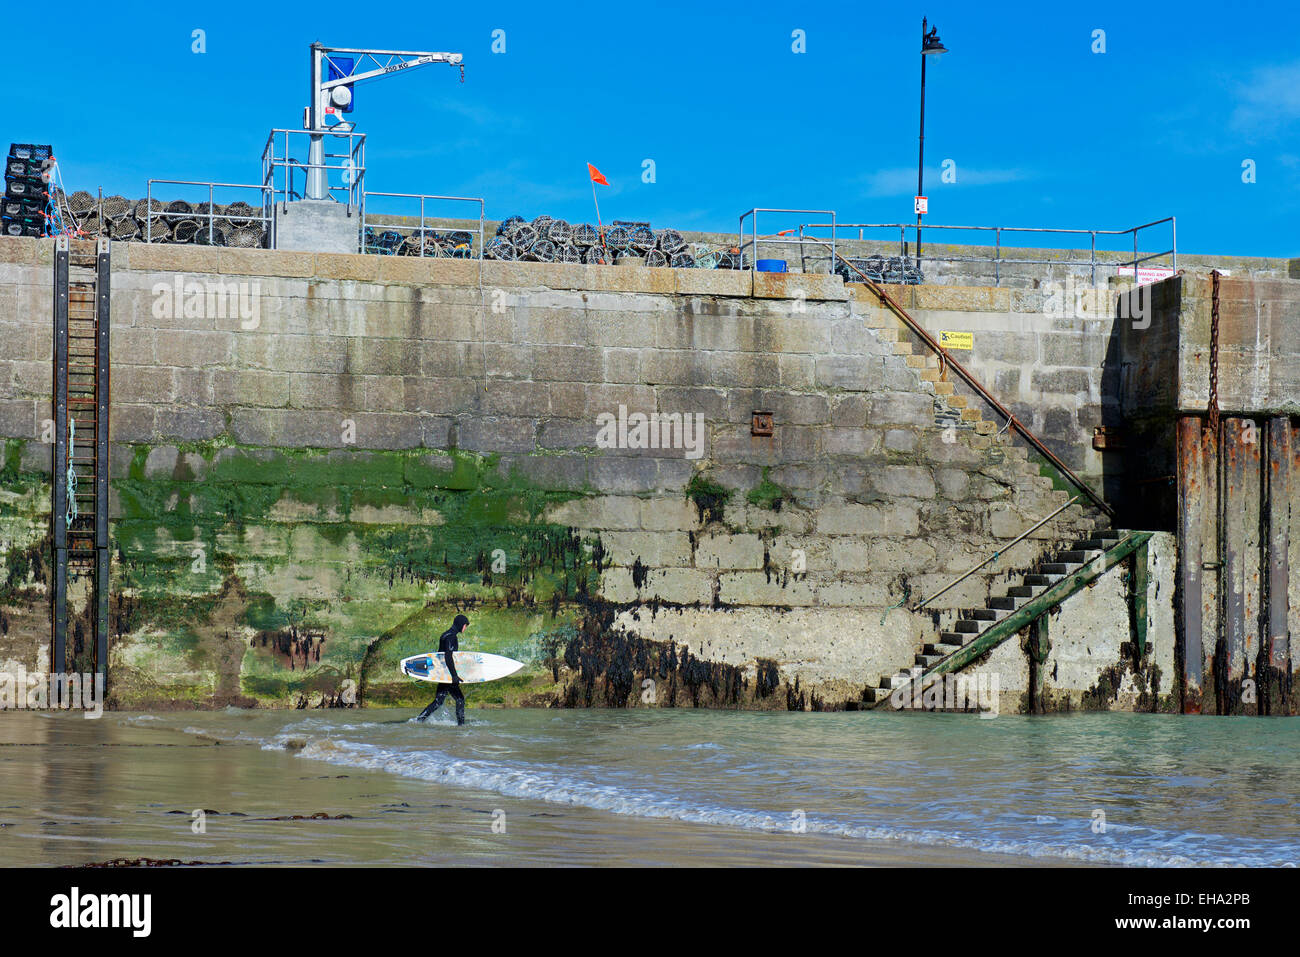 Surfer walking through the harbour at Newquay, Cornwall, England UK - Stock Image